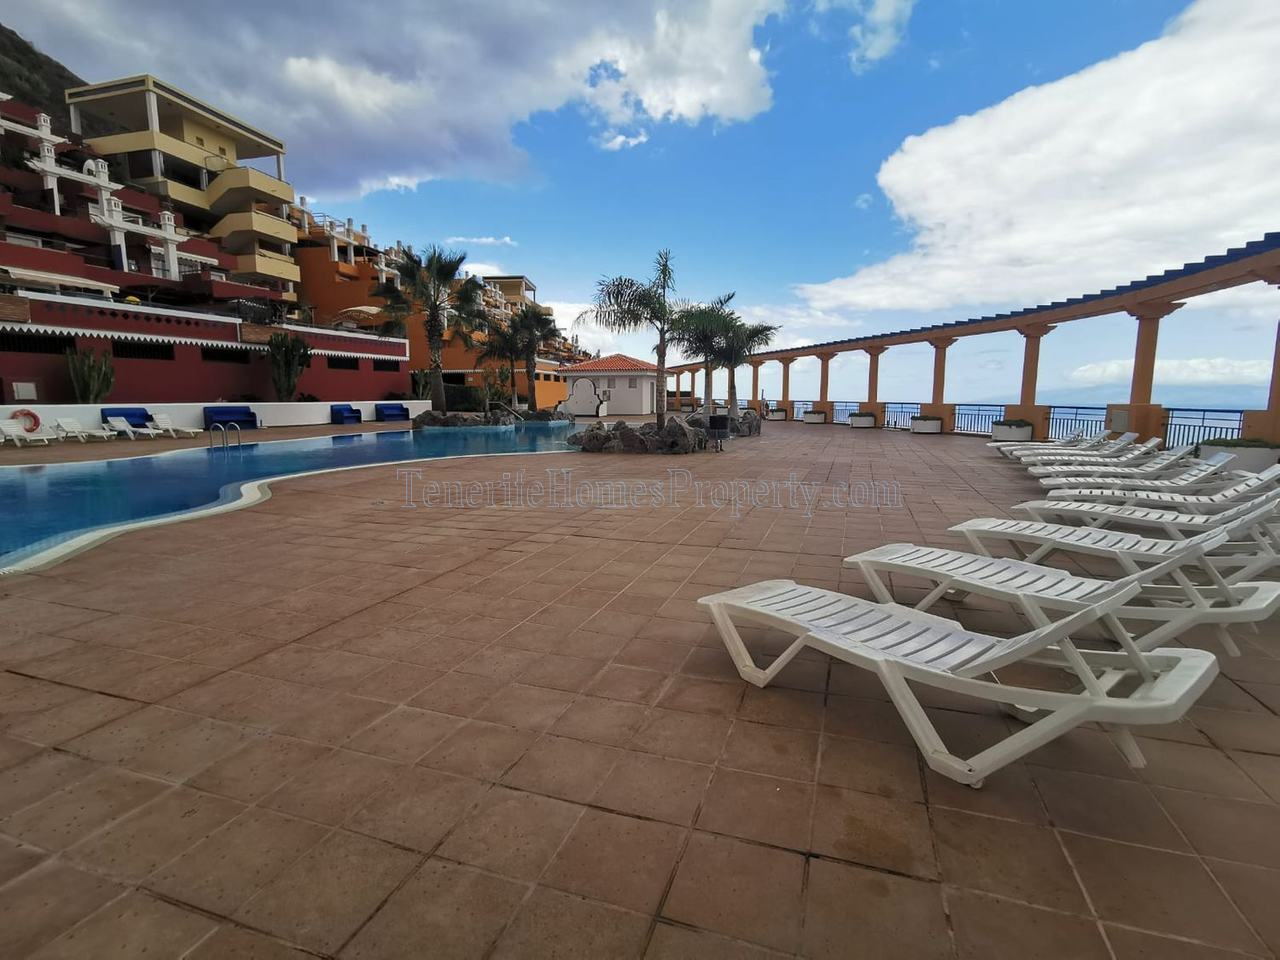 2 bedroom apartment for sale Torviscas Costa Adeje ...